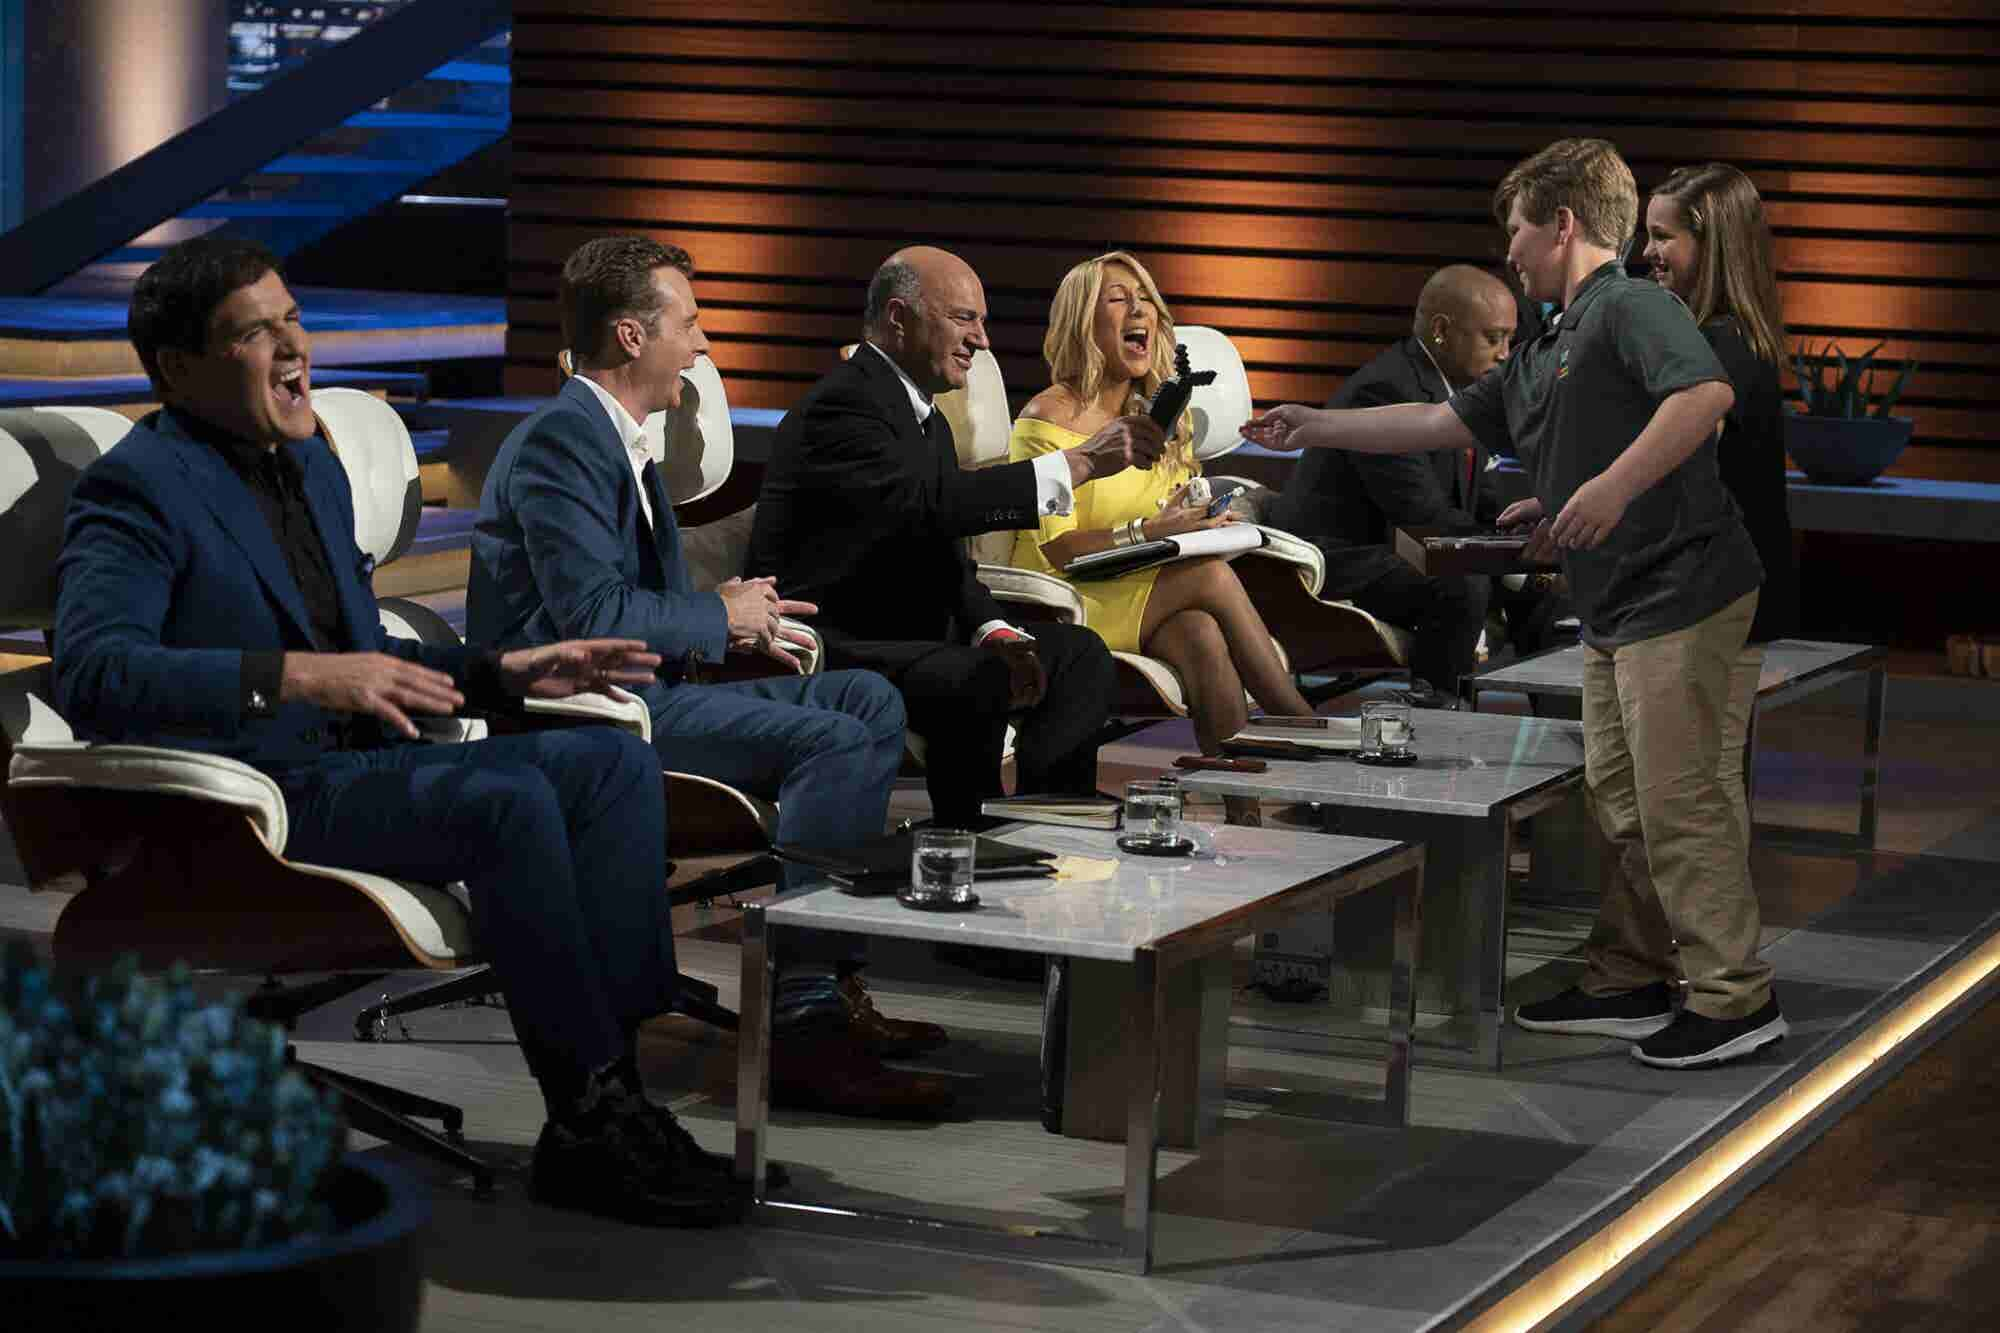 From Entrepreneur to Shark: How 'Shark Tank' Helped Shape My American...